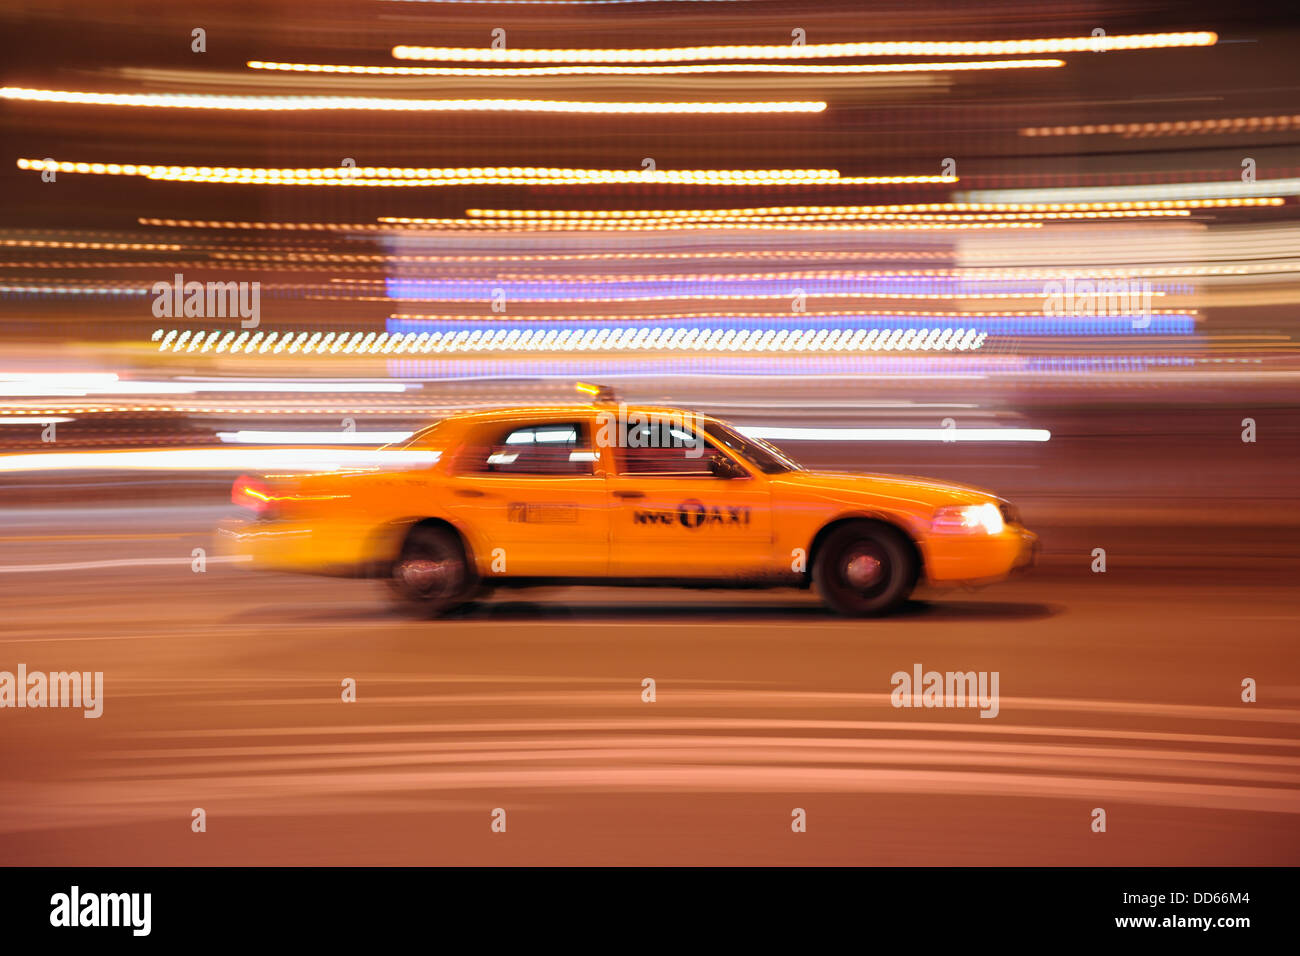 USA, New York State, New York City, verschwommene Bewegung von yellow cab Stockbild